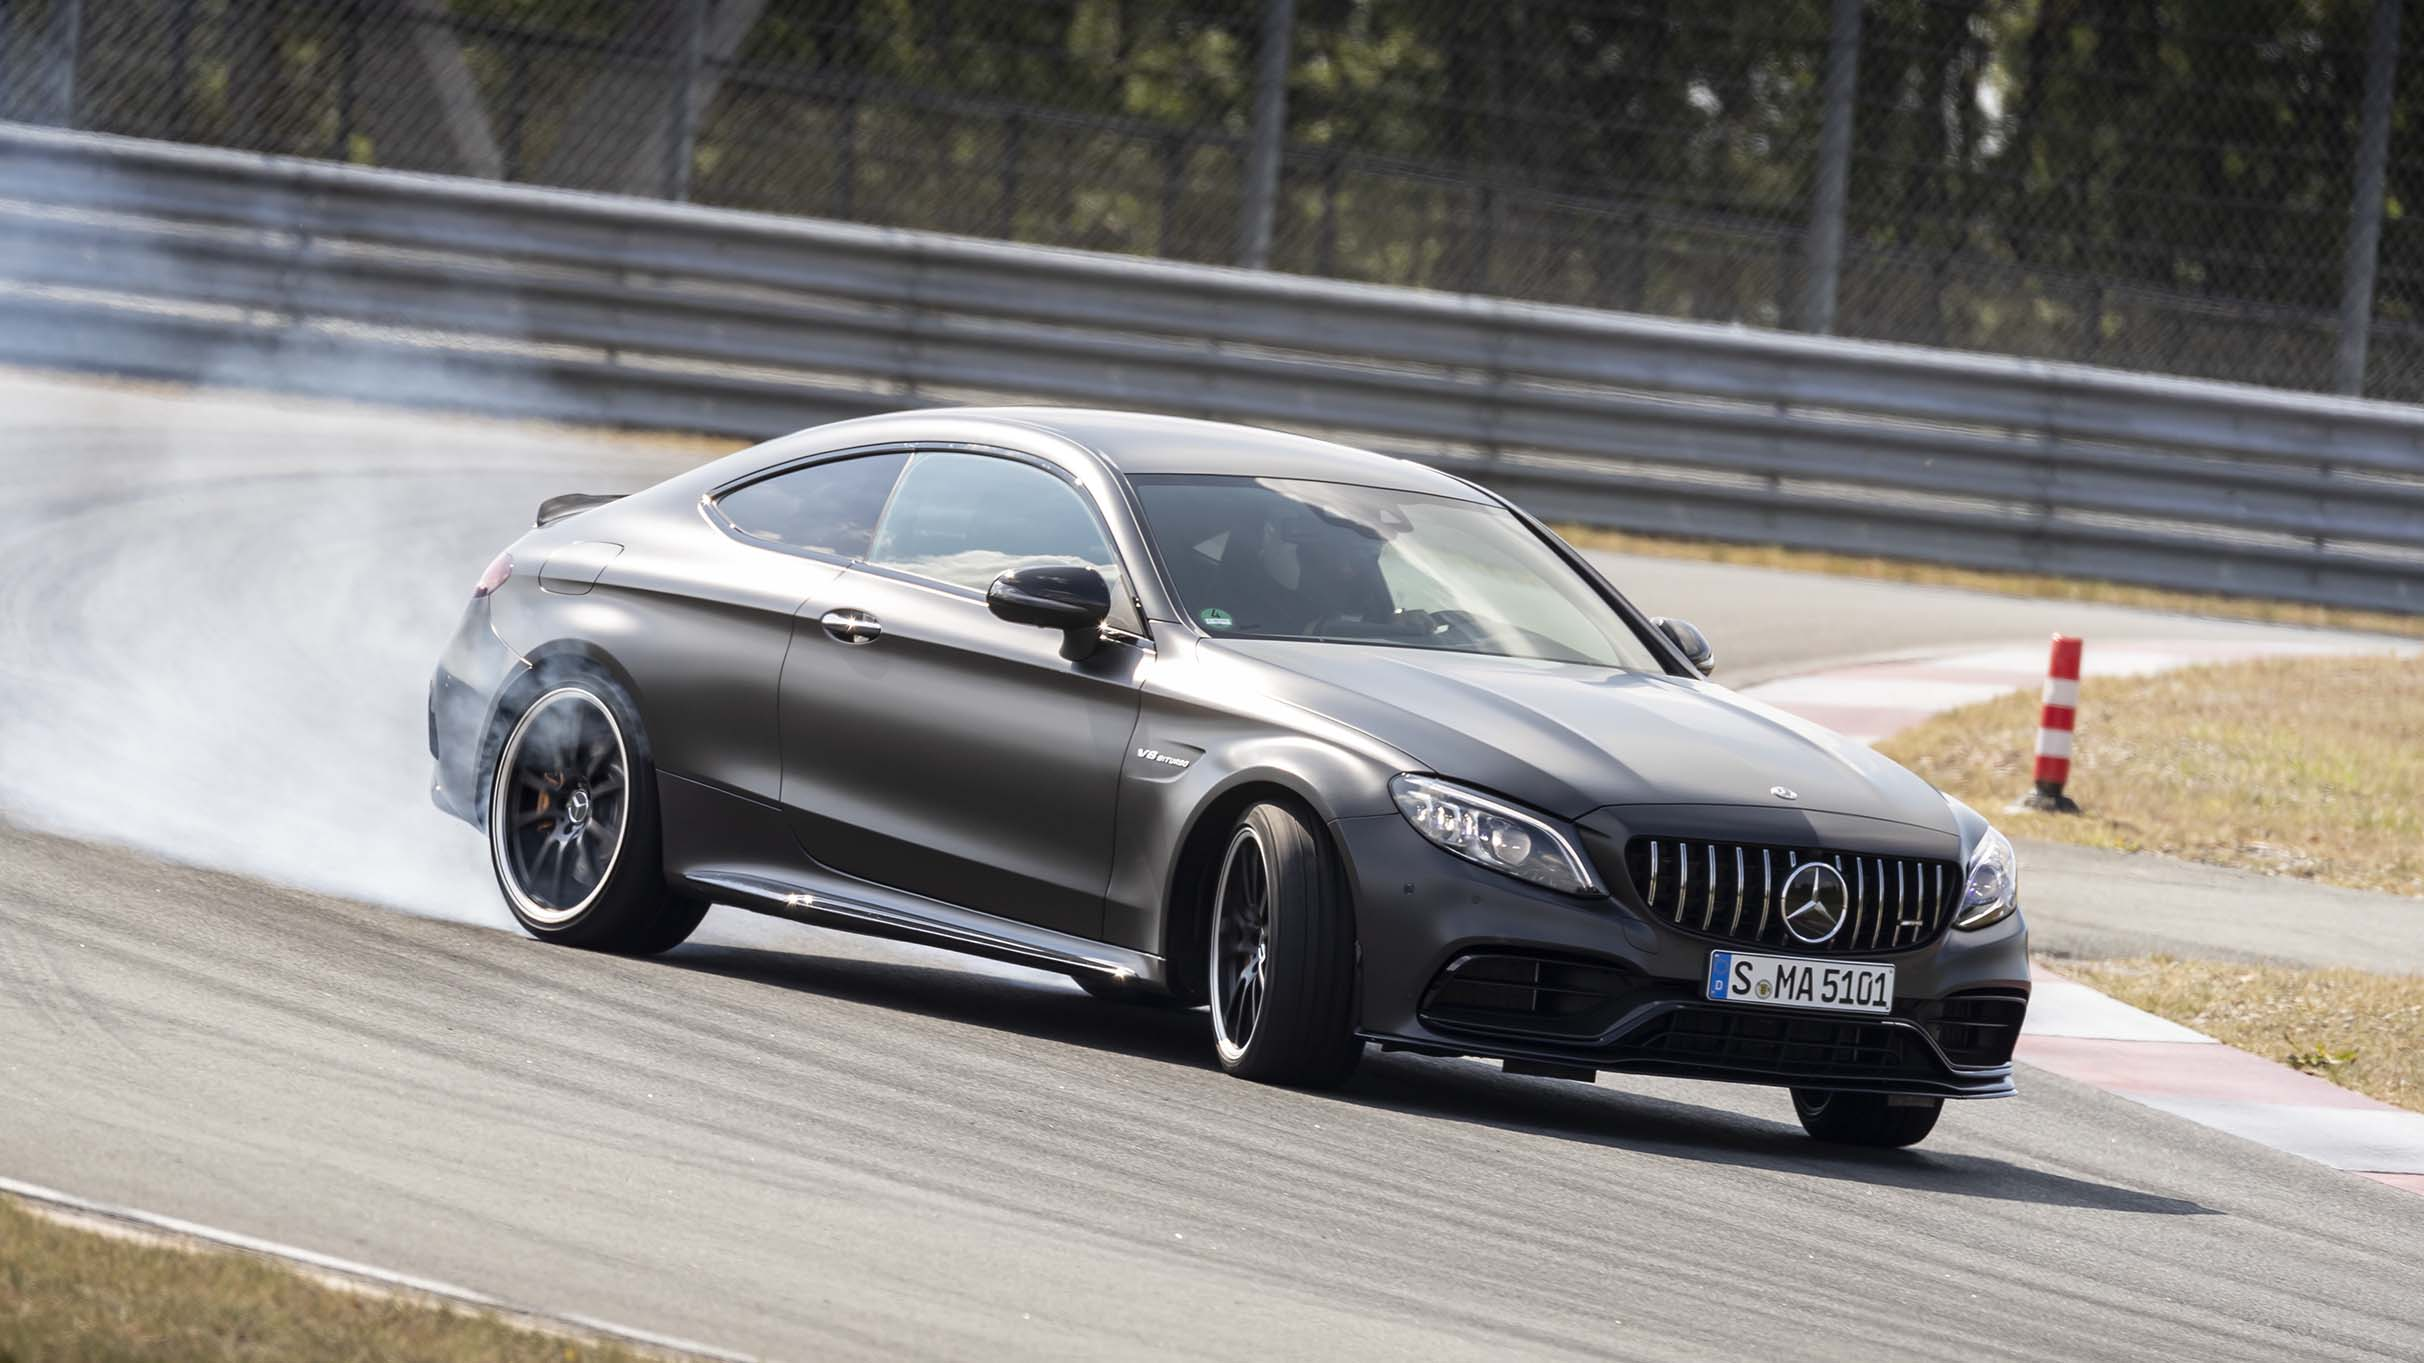 Mercedes-AMG C63 S Coupe review: 503bhp Benz driven | Top Gear